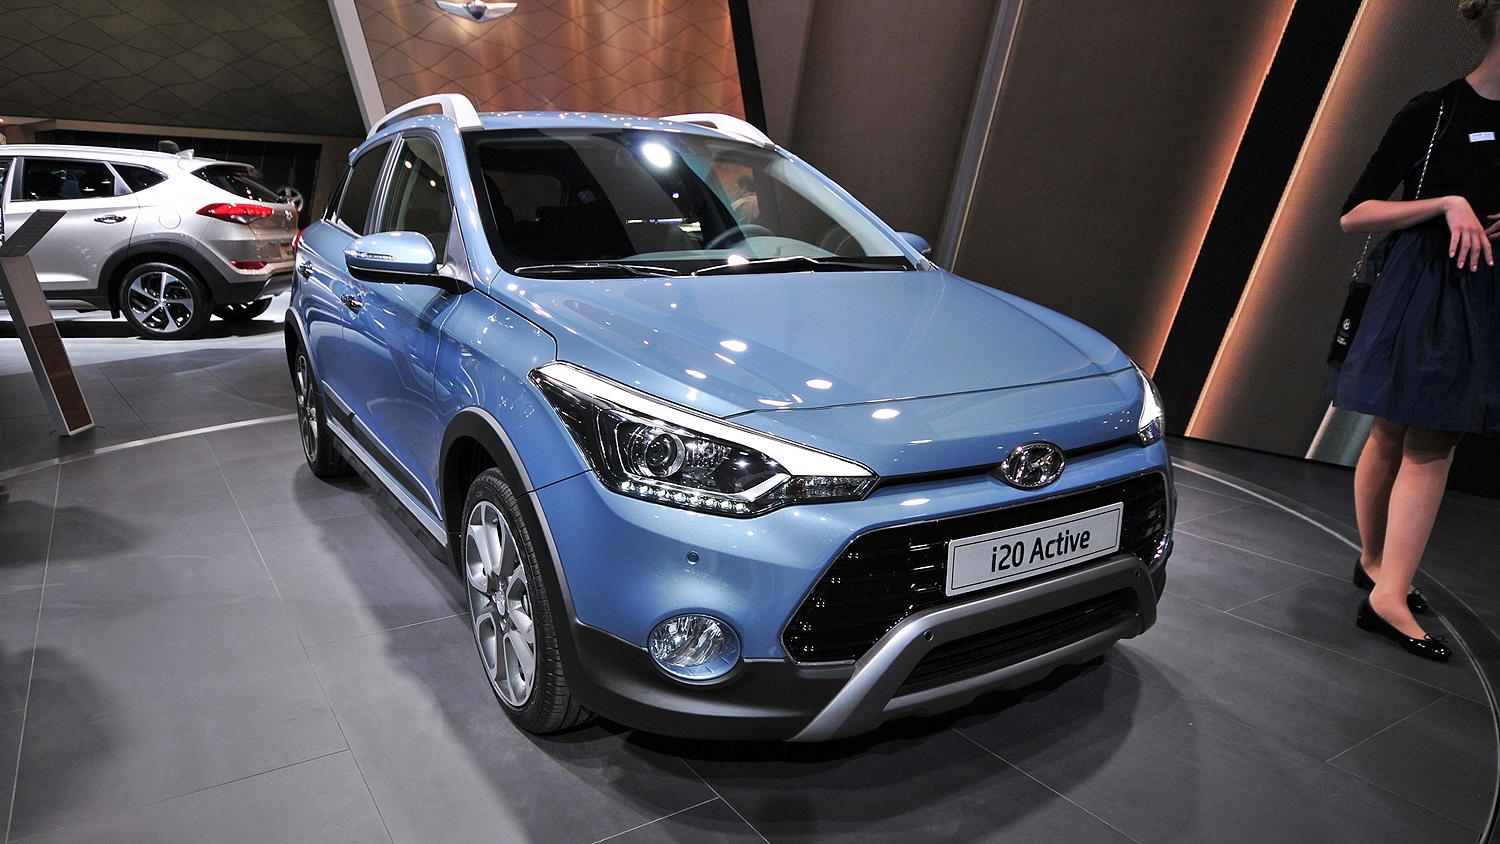 2016 hyundai i20 active pictures  photos  wallpapers